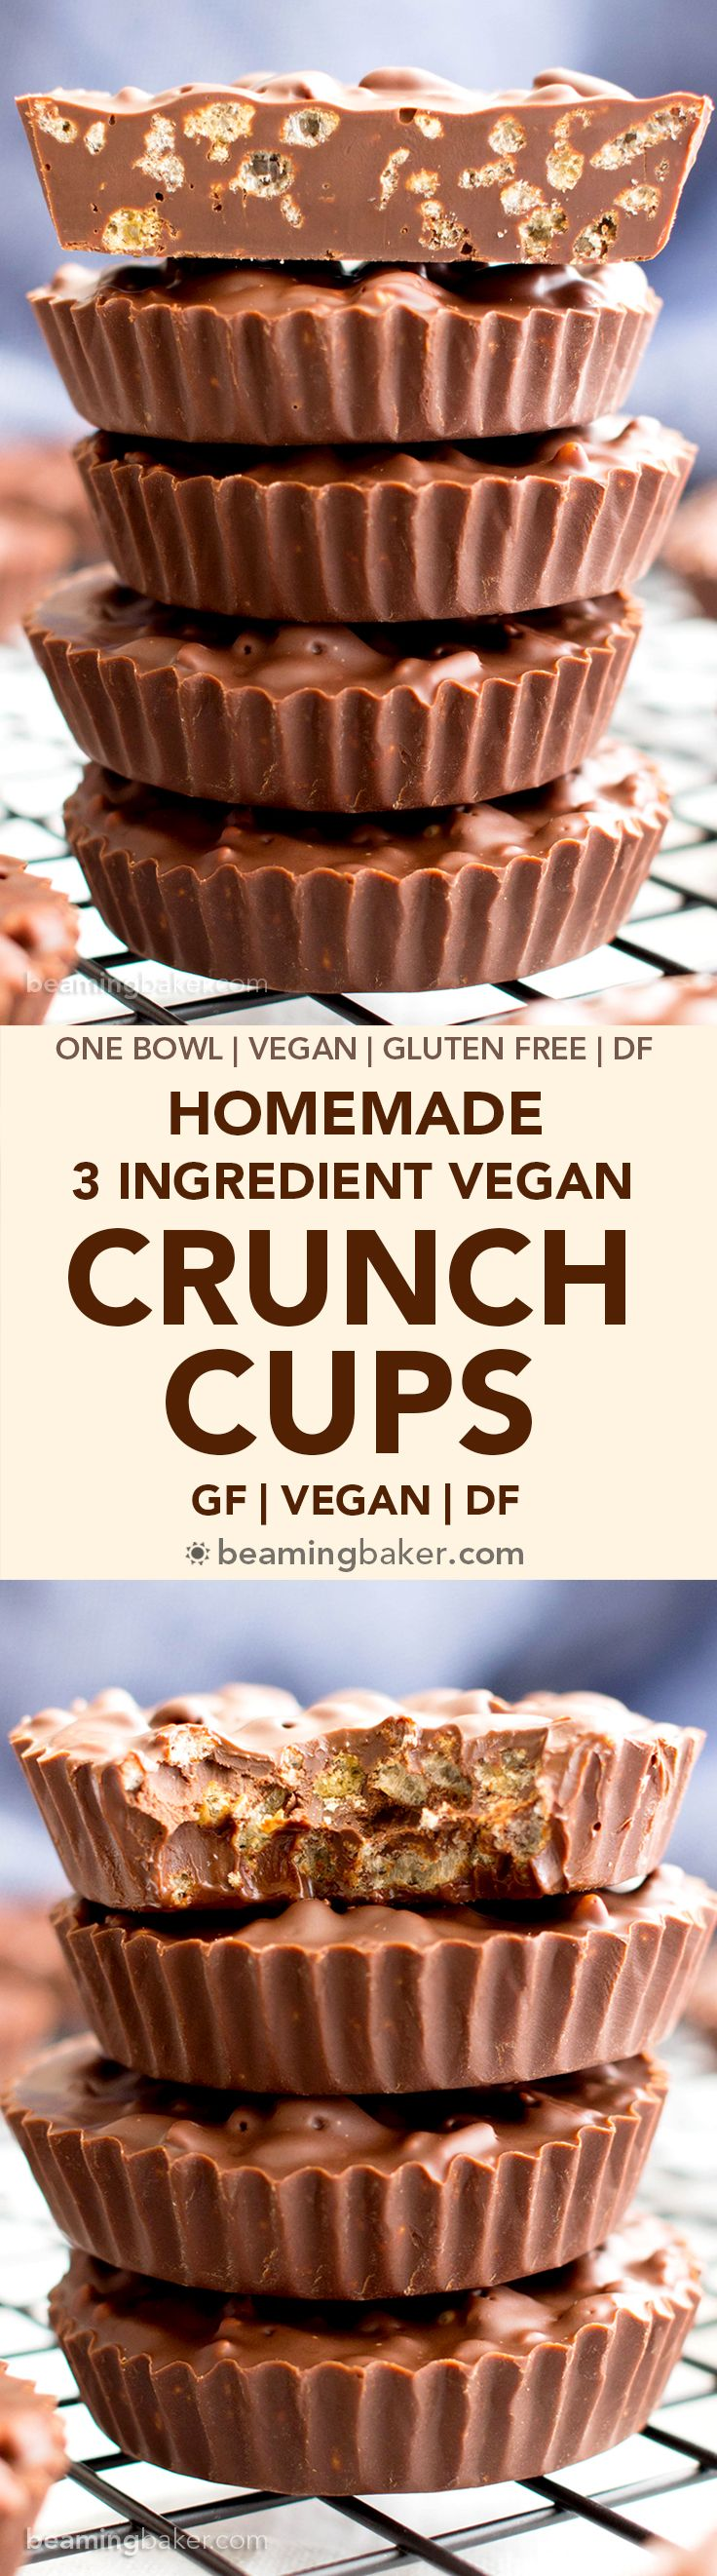 3 Ingredient Homemade Crunch Cups V Gf An Easy One Bowl